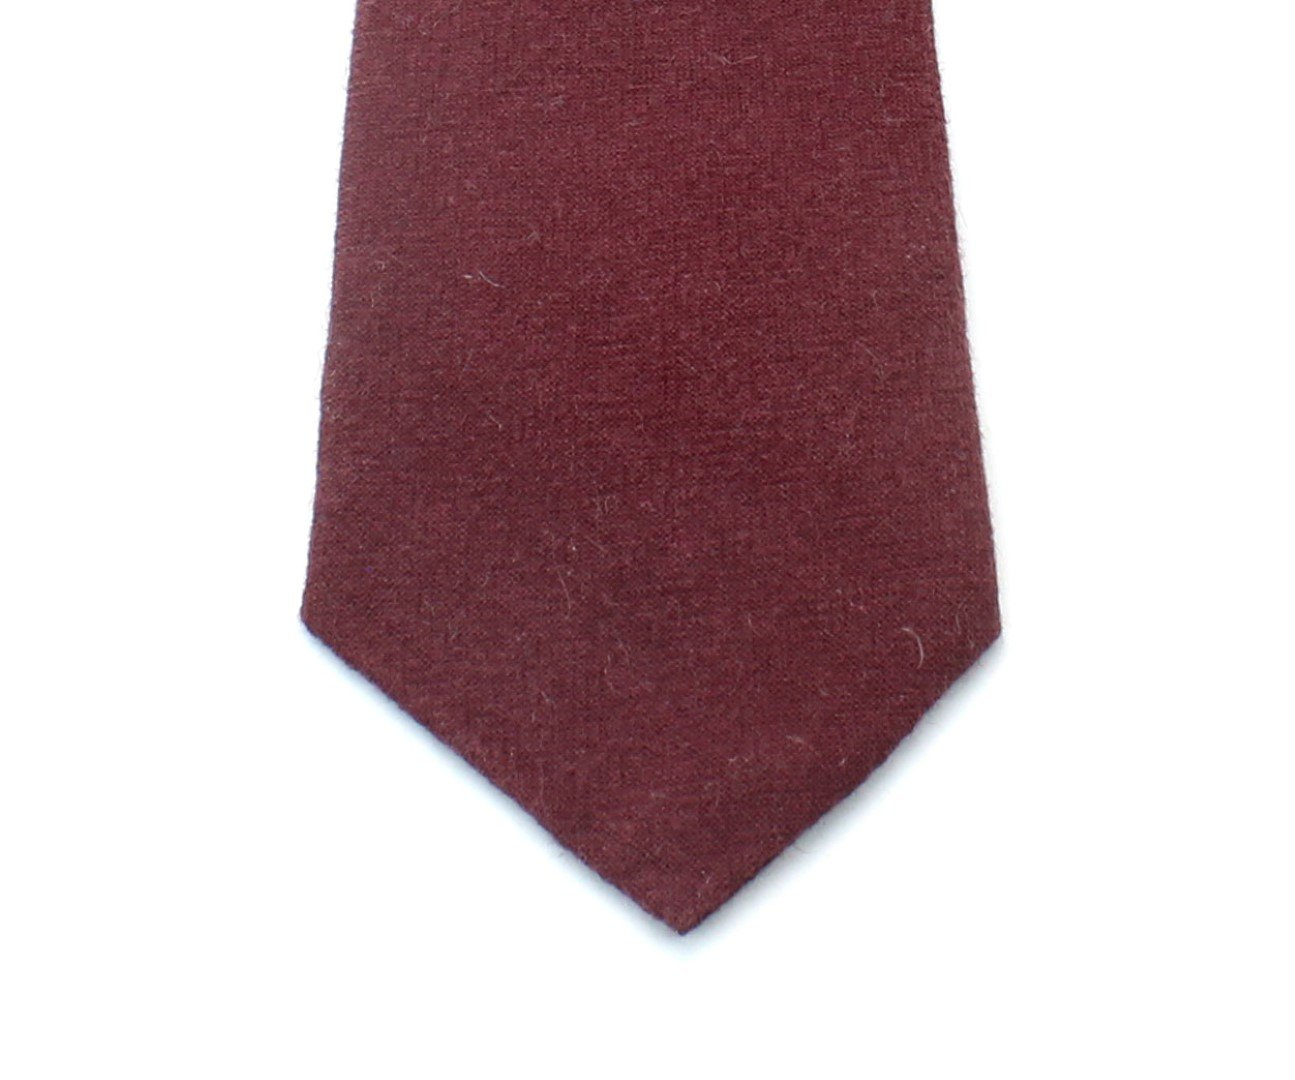 Kids Linen Formal Necktie Tie Modern Distressed Finish Solid Colors - Burgundy by Proper Materials (Image #2)